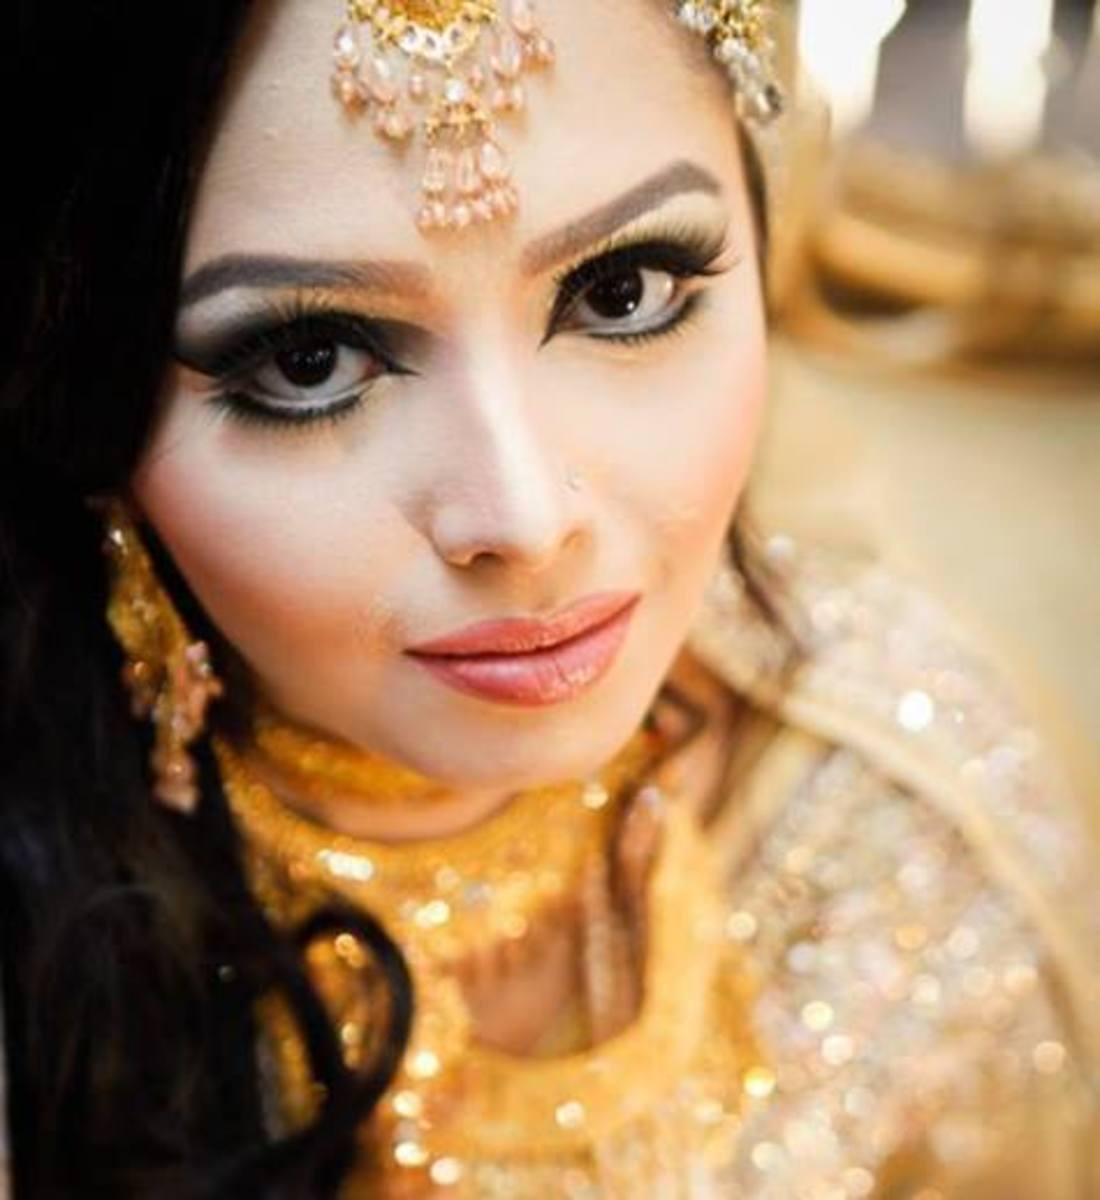 Simple yet stunning makeover by Zahid Khan.